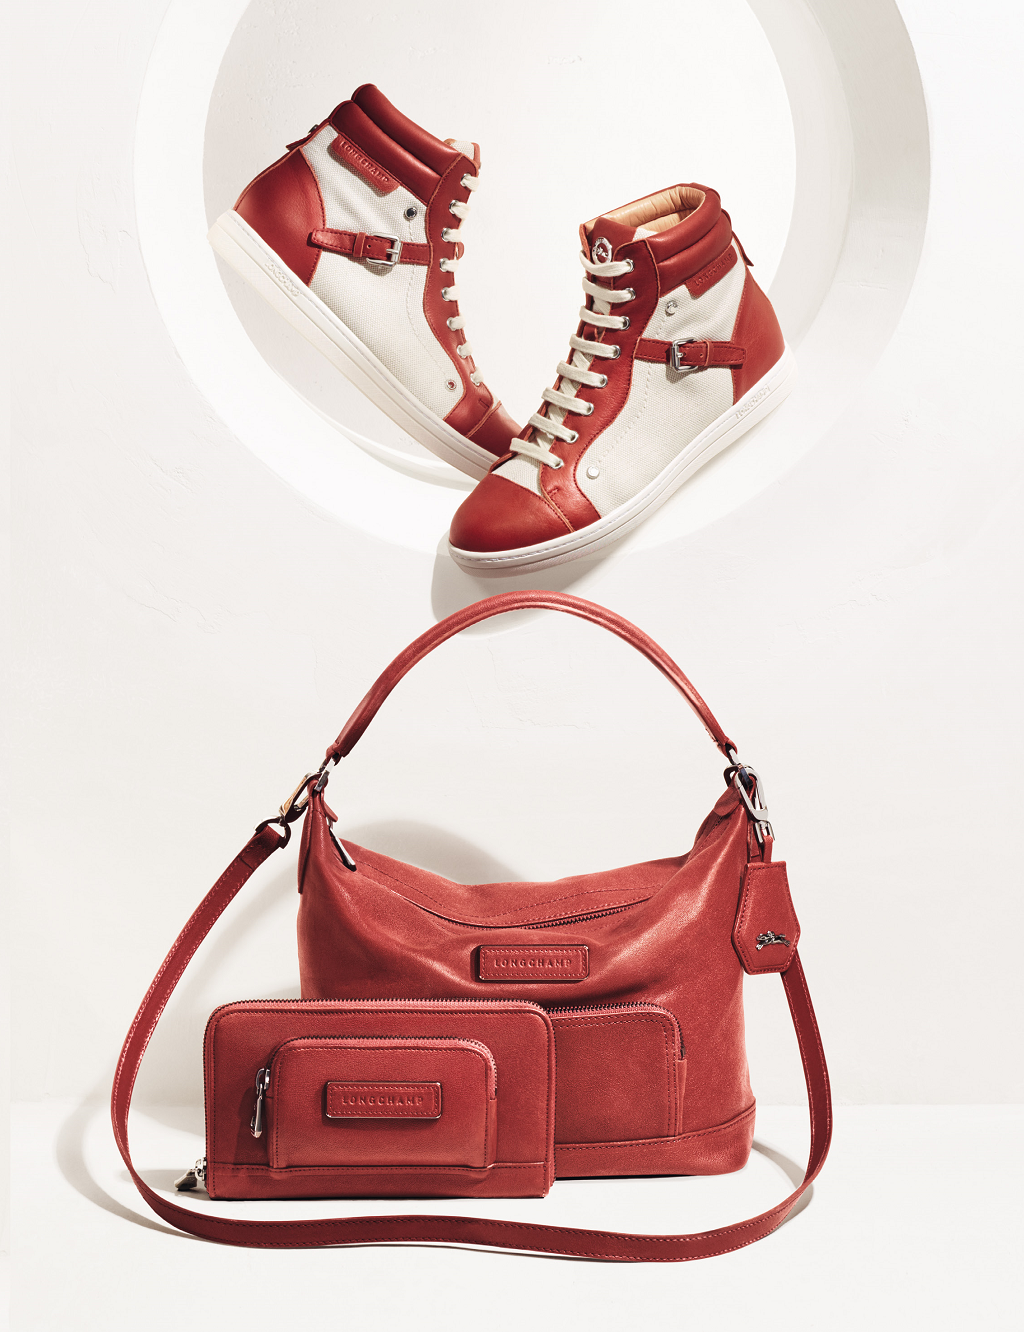 Longchamp Spring 2014 collection. Discover it on www.longchamp.com ... f9207c7aa943a